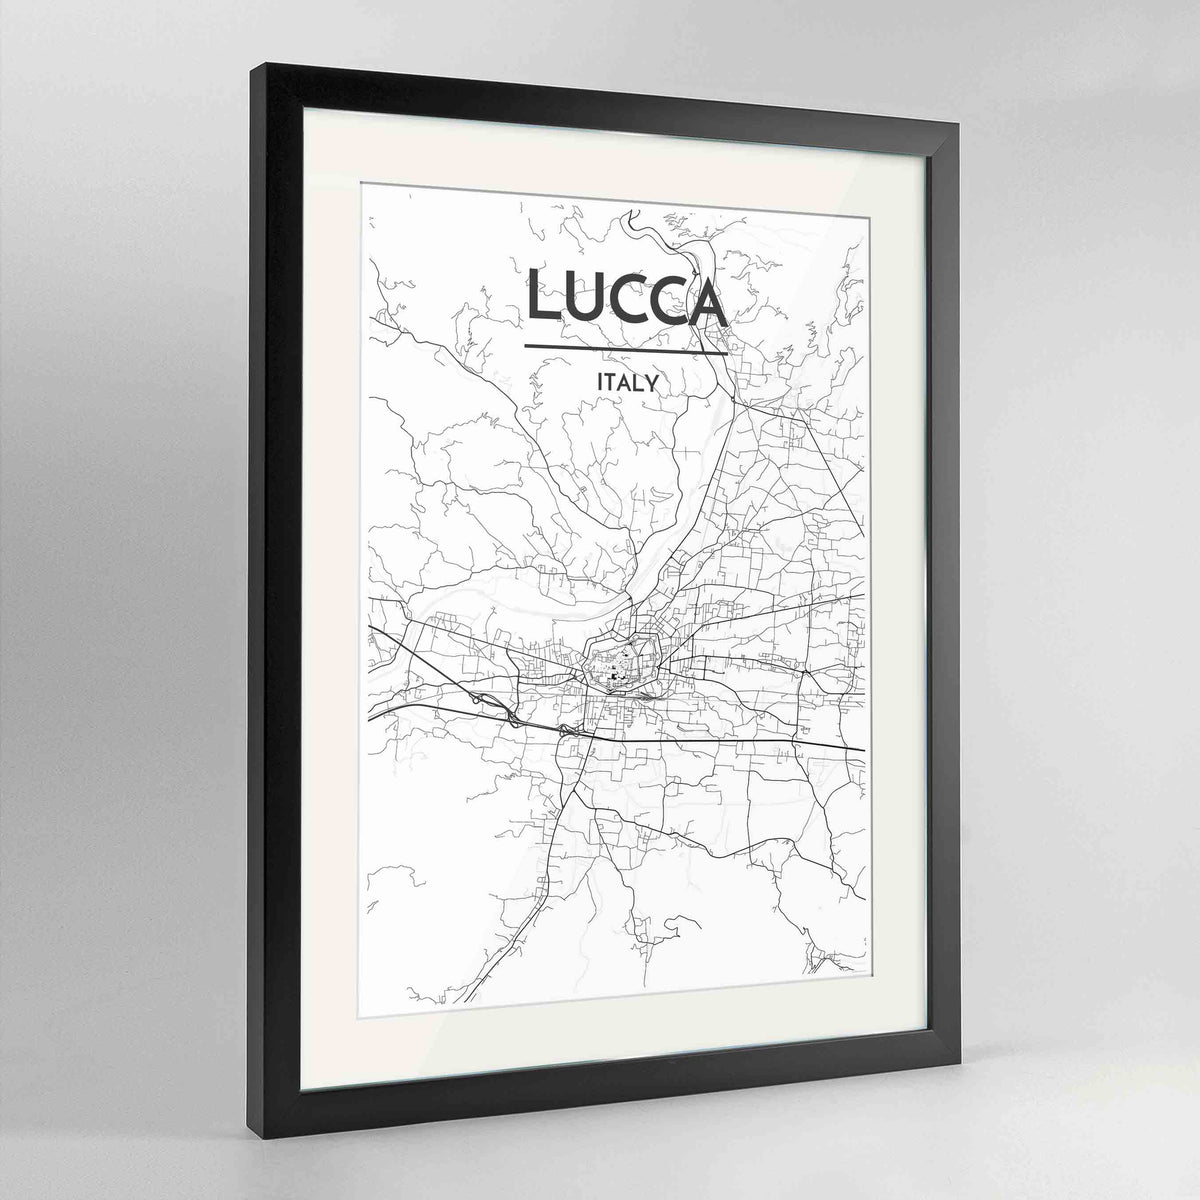 "Framed Lucca Map Art Print 24x36"" Contemporary Black frame Point Two Design Group"